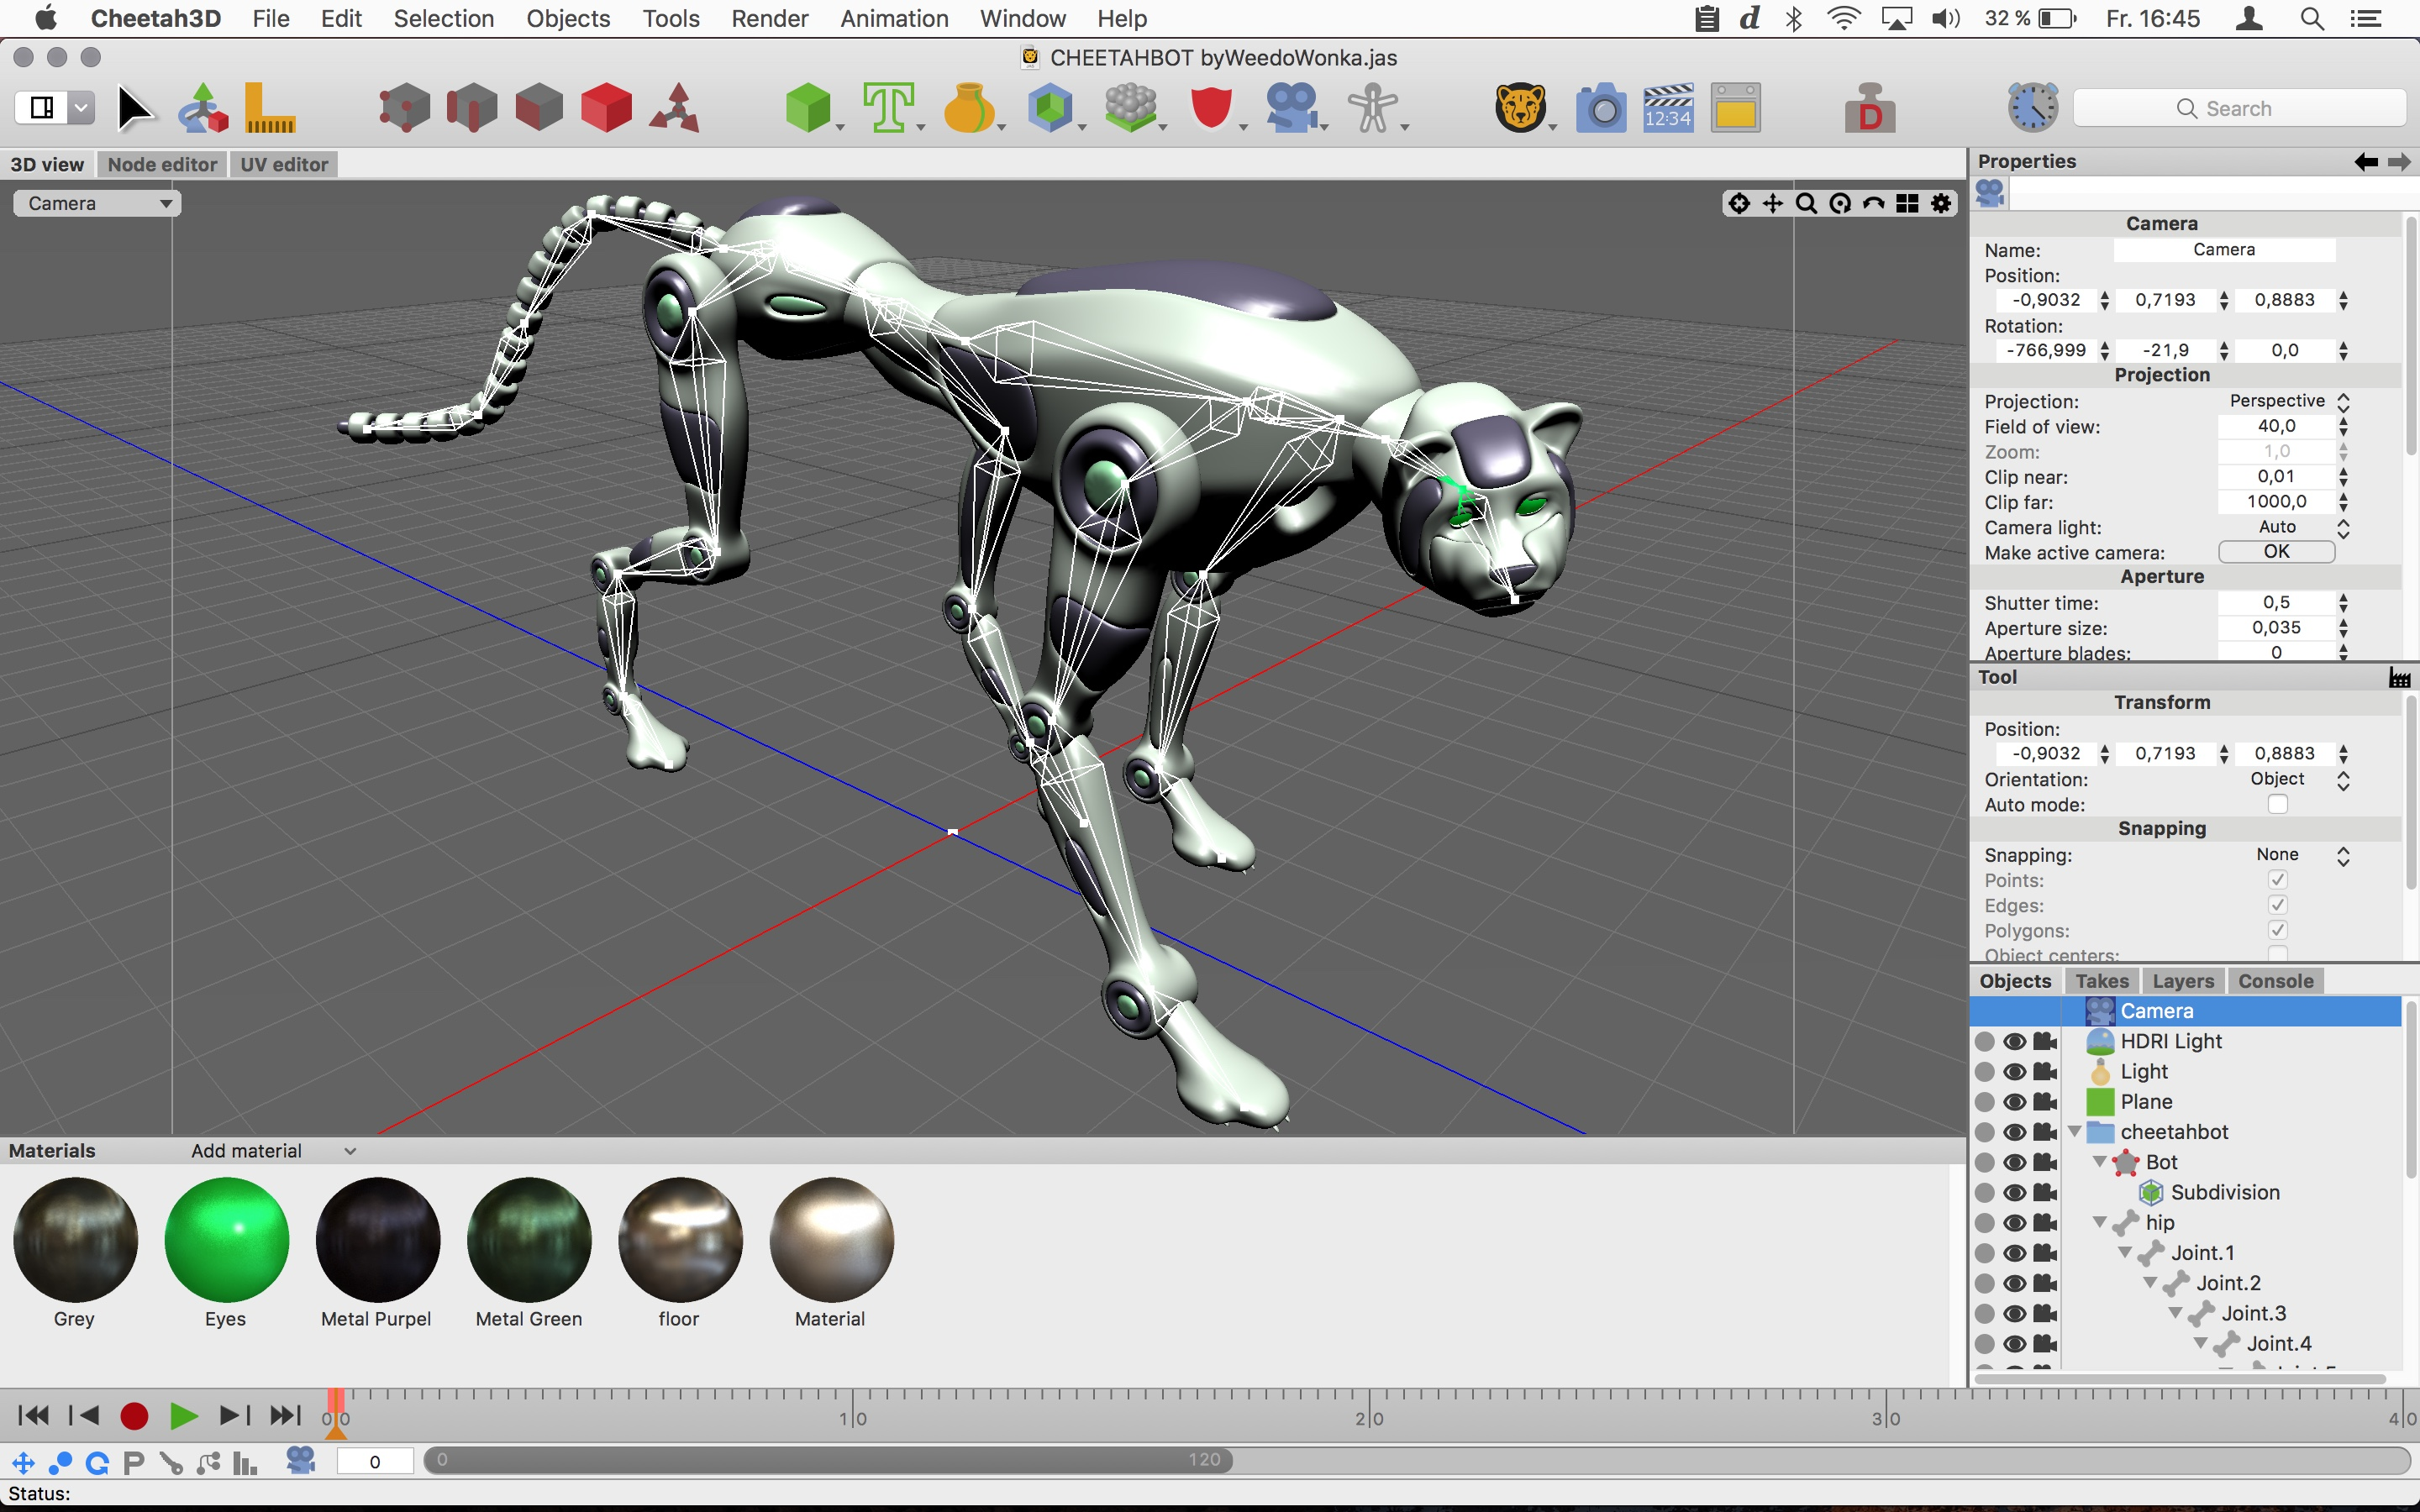 Cheetah3D 7.1 released - Add polygon reduction, loft, better text spline Image